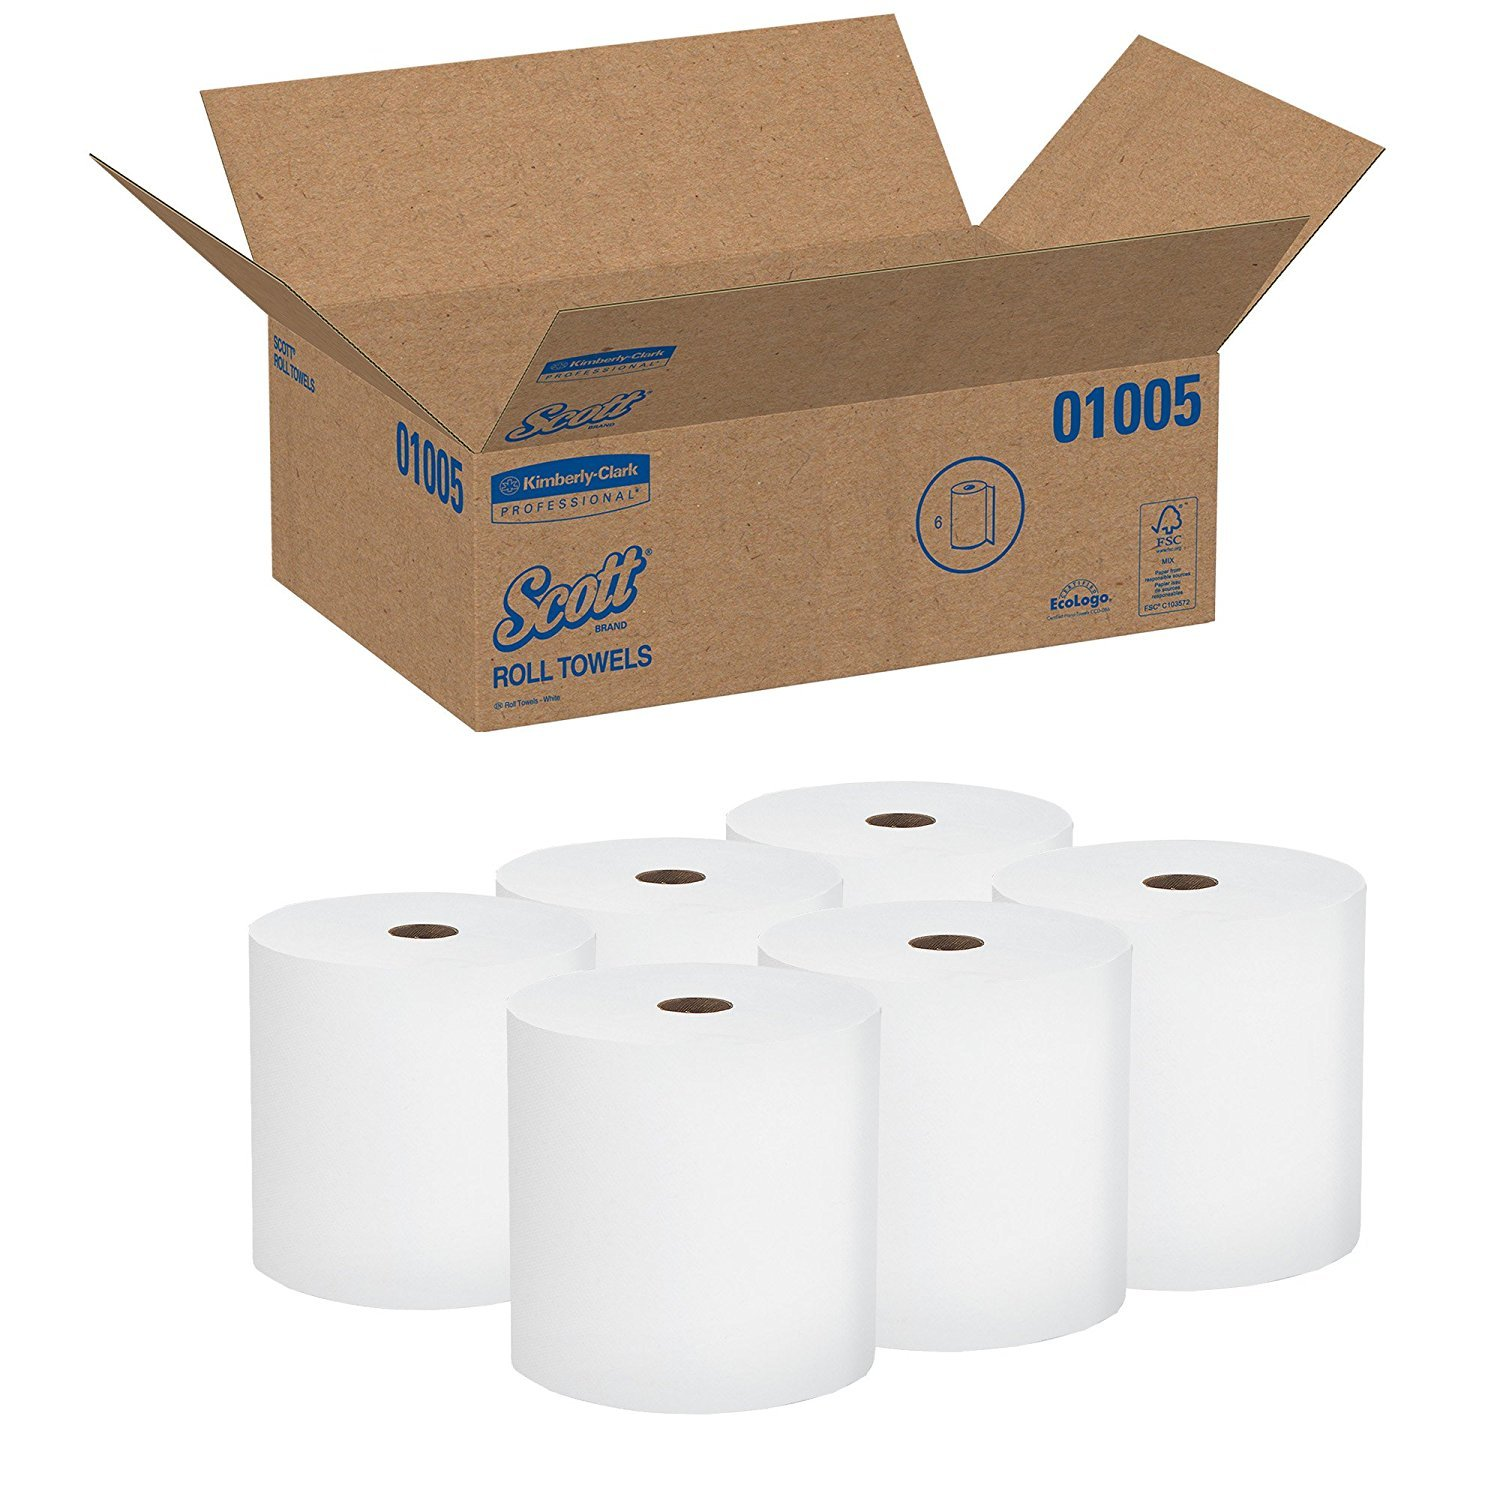 Scott High Capacity Hard Roll MFxTVO Paper Towels (01005), White, 6 Count (Pack of 5)